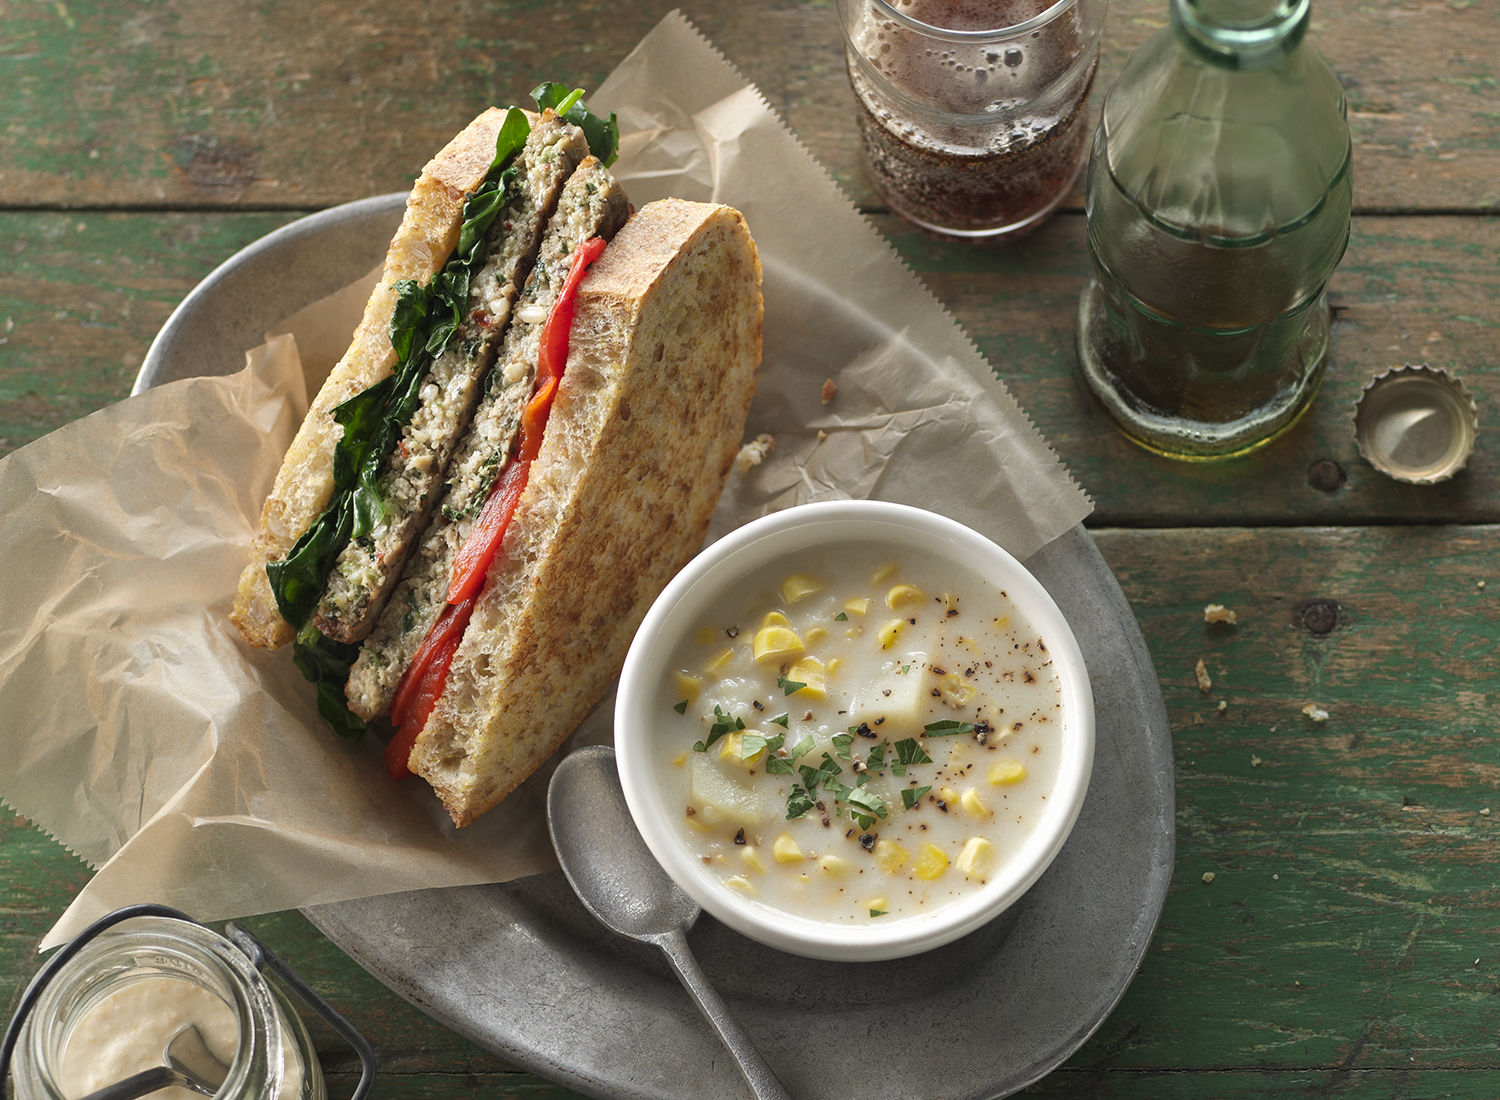 Spinach and Roasted Red Pepper Turkey Sandwich | Tony Kubat Phot